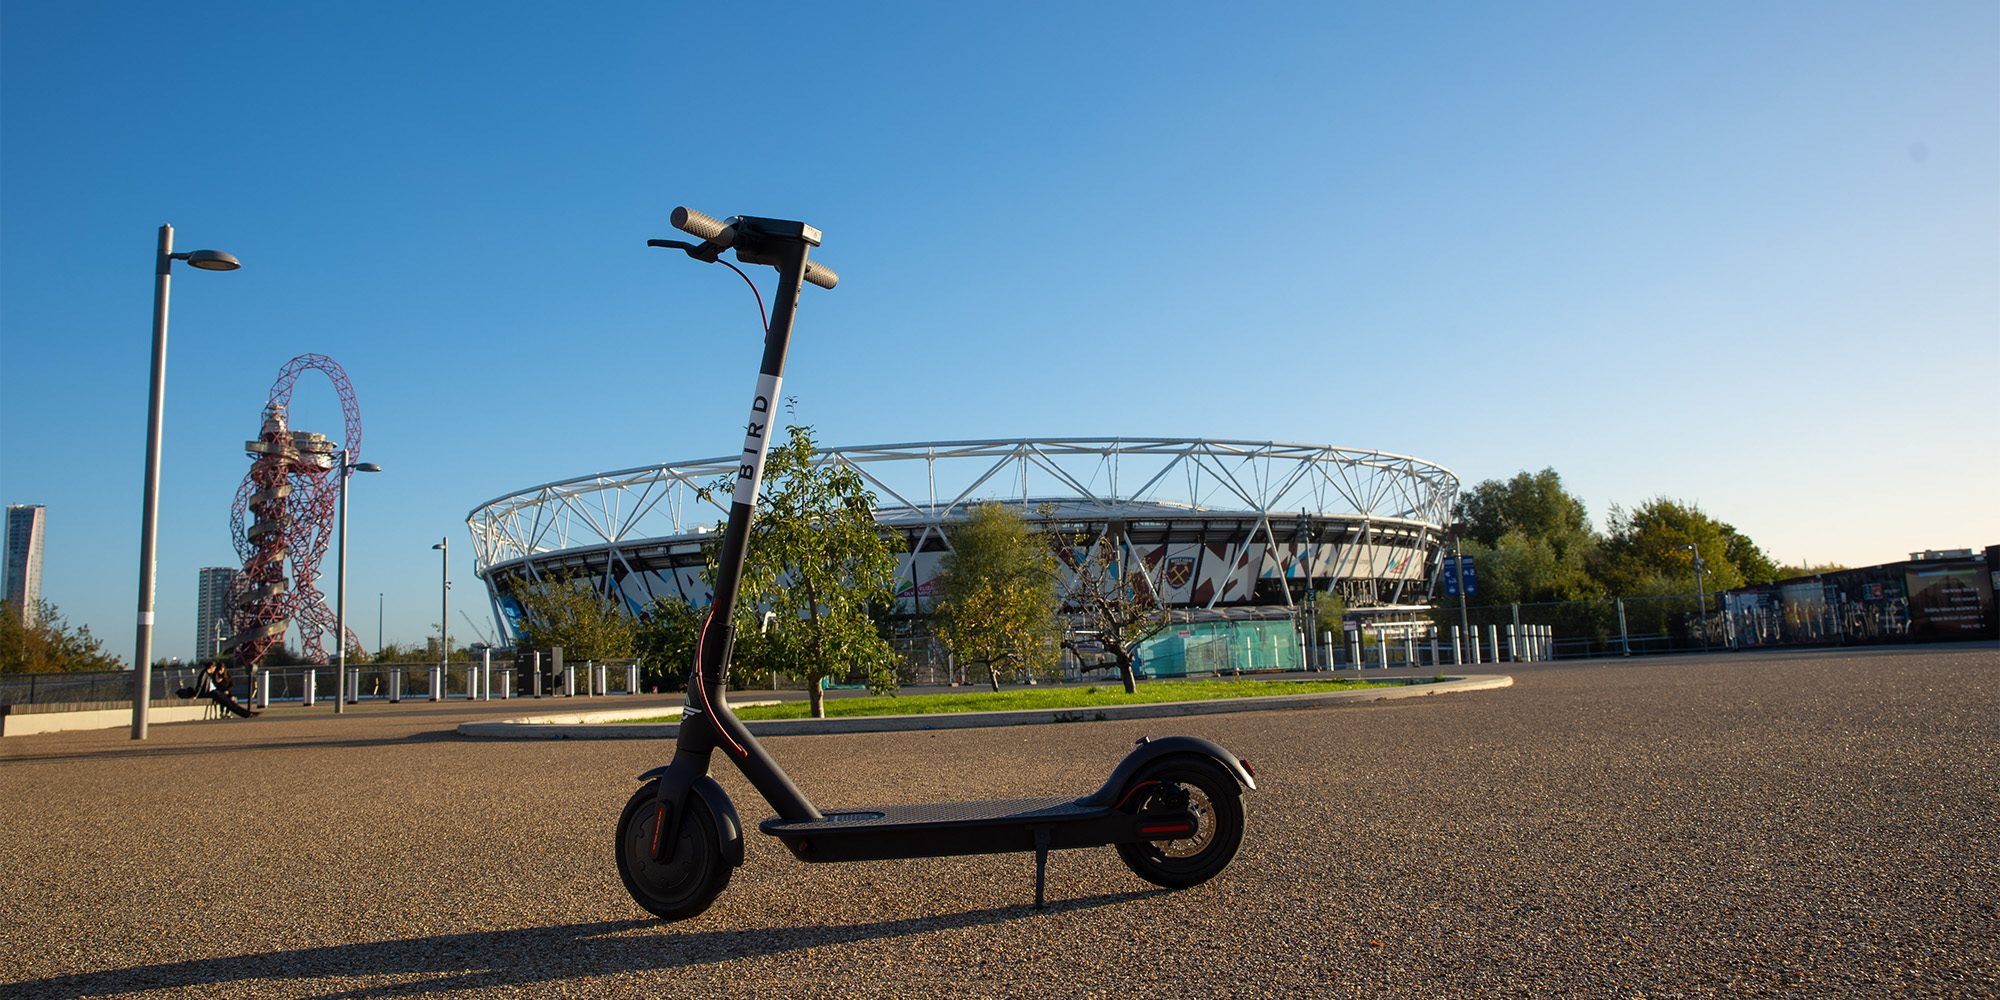 Electric scooter unicorn Bird launches trial in Queen Elizabeth Olympic Park